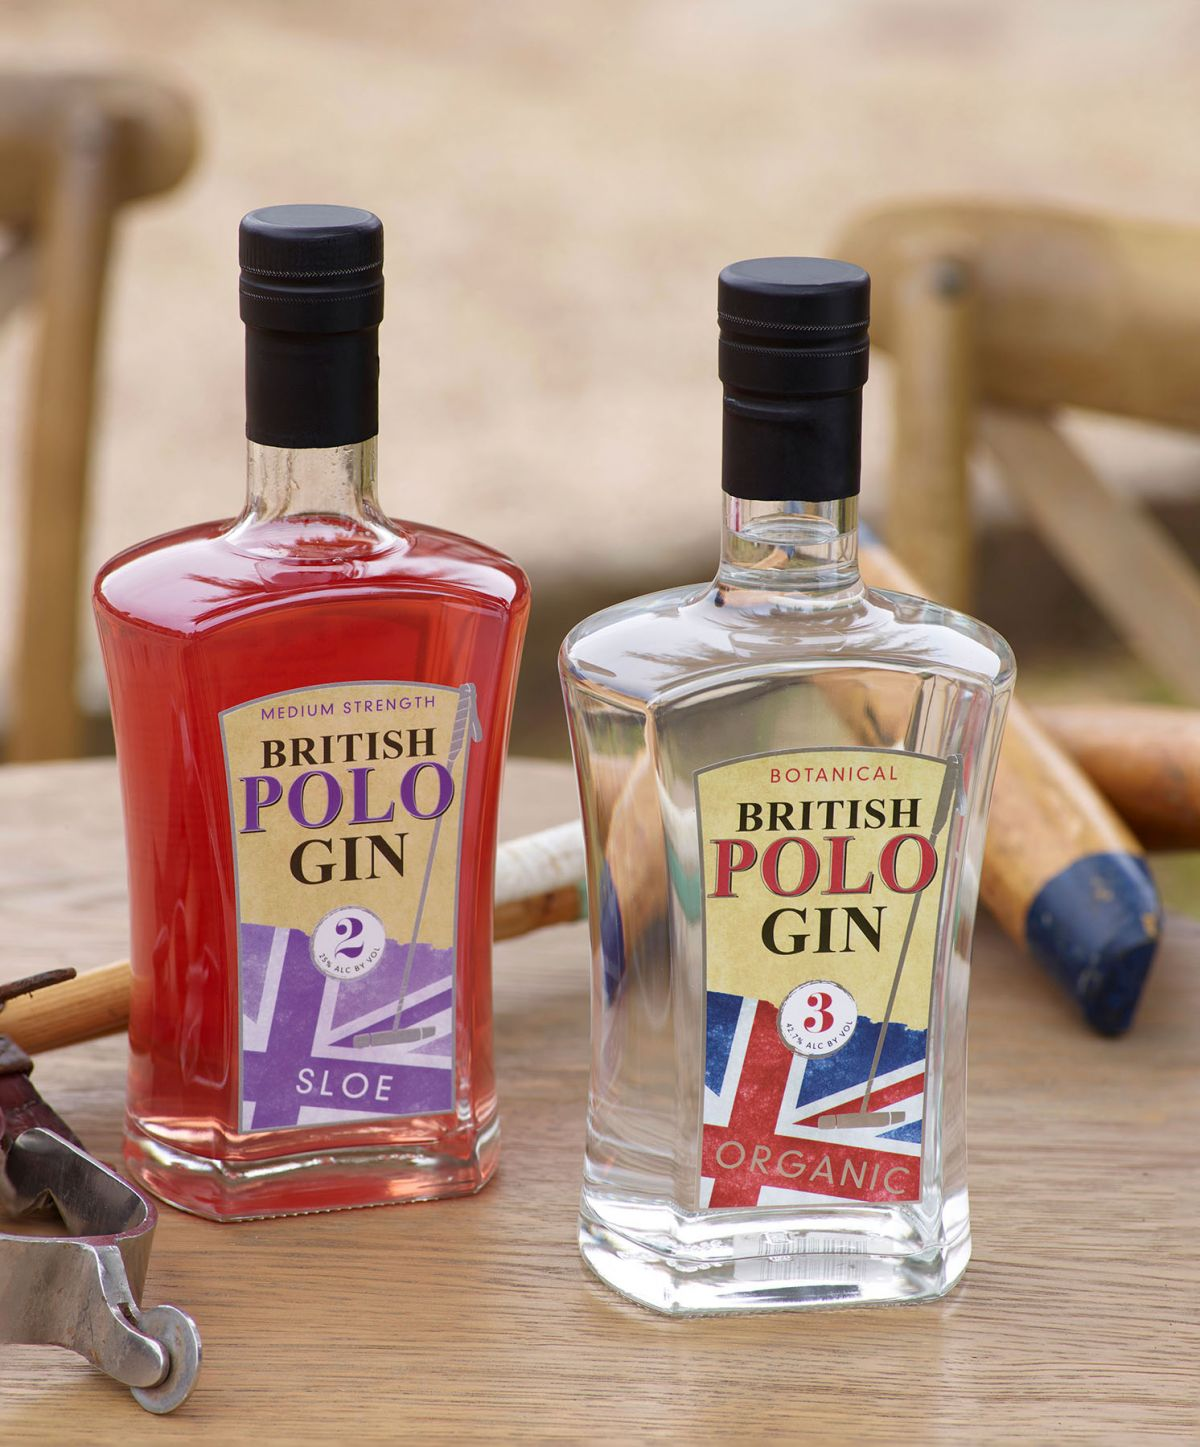 Polo-Gin-Bottles-21-high-res-w.jpg